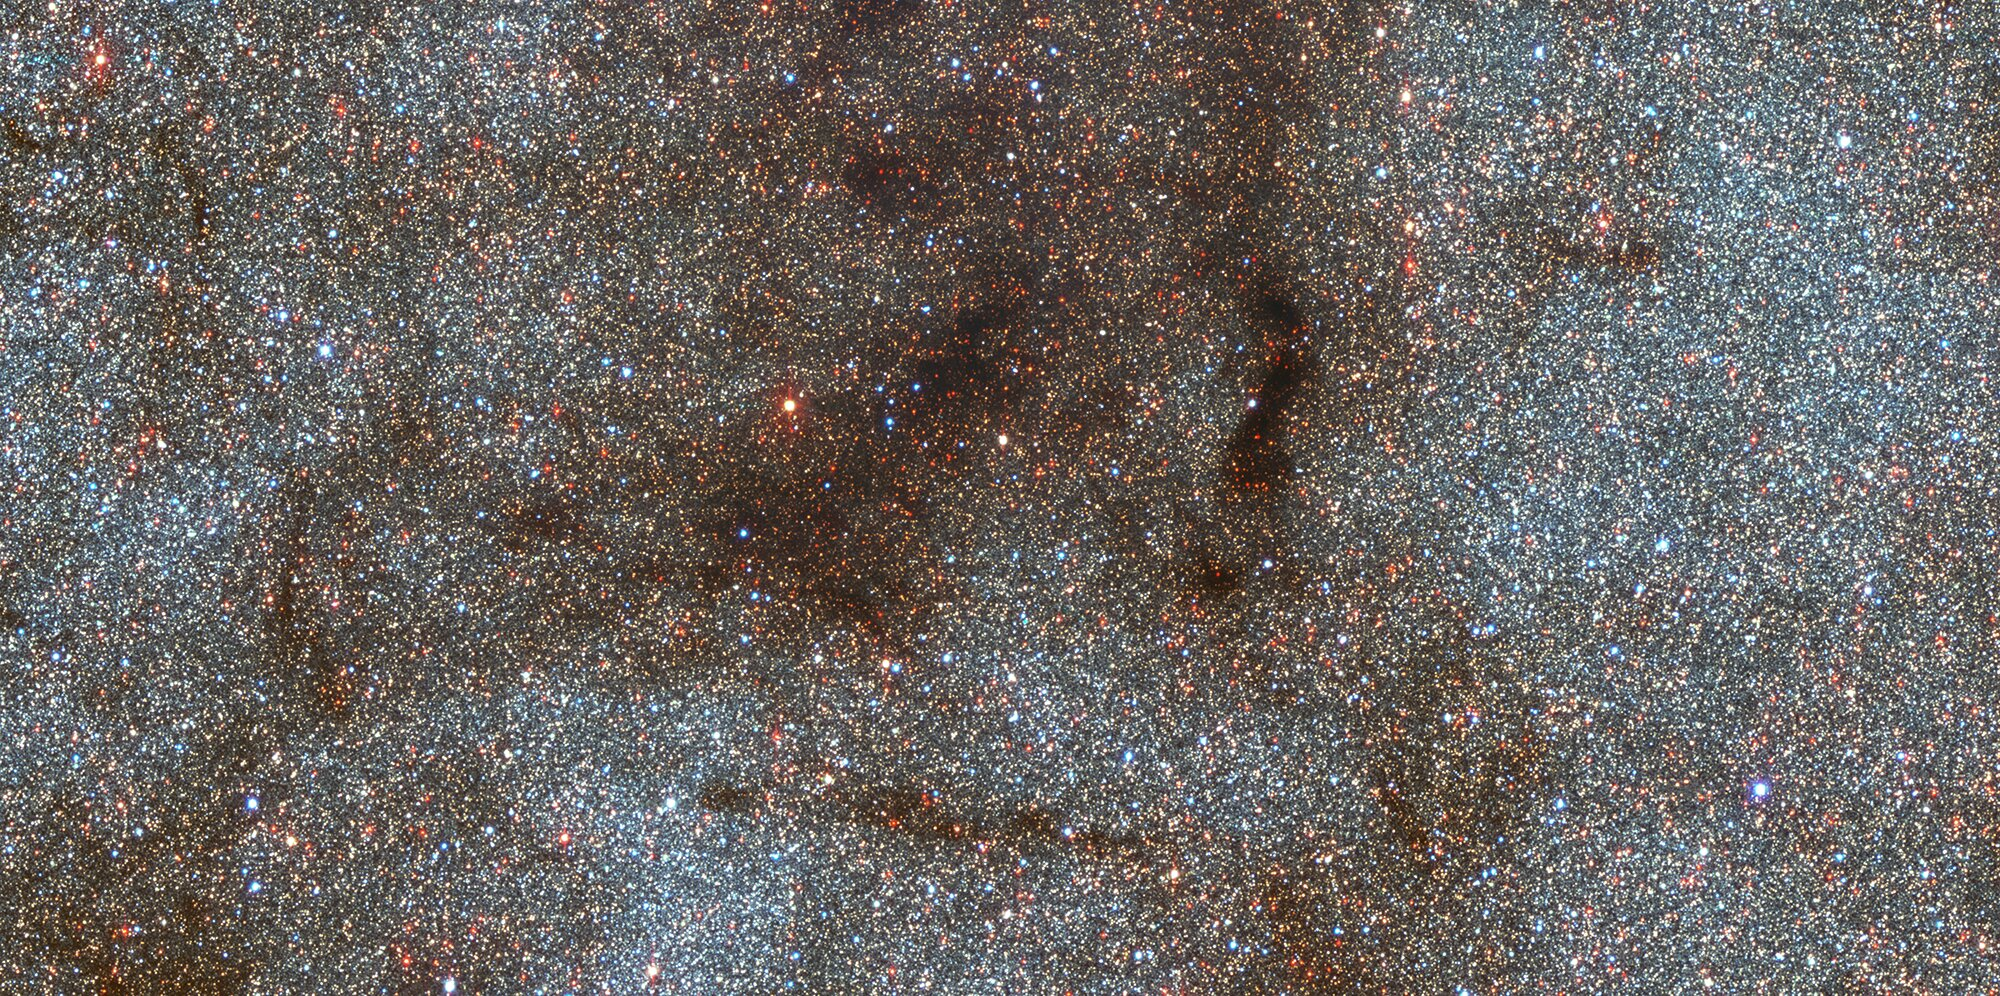 New survey finds that single burst of star formation created Milky Way's central bulge